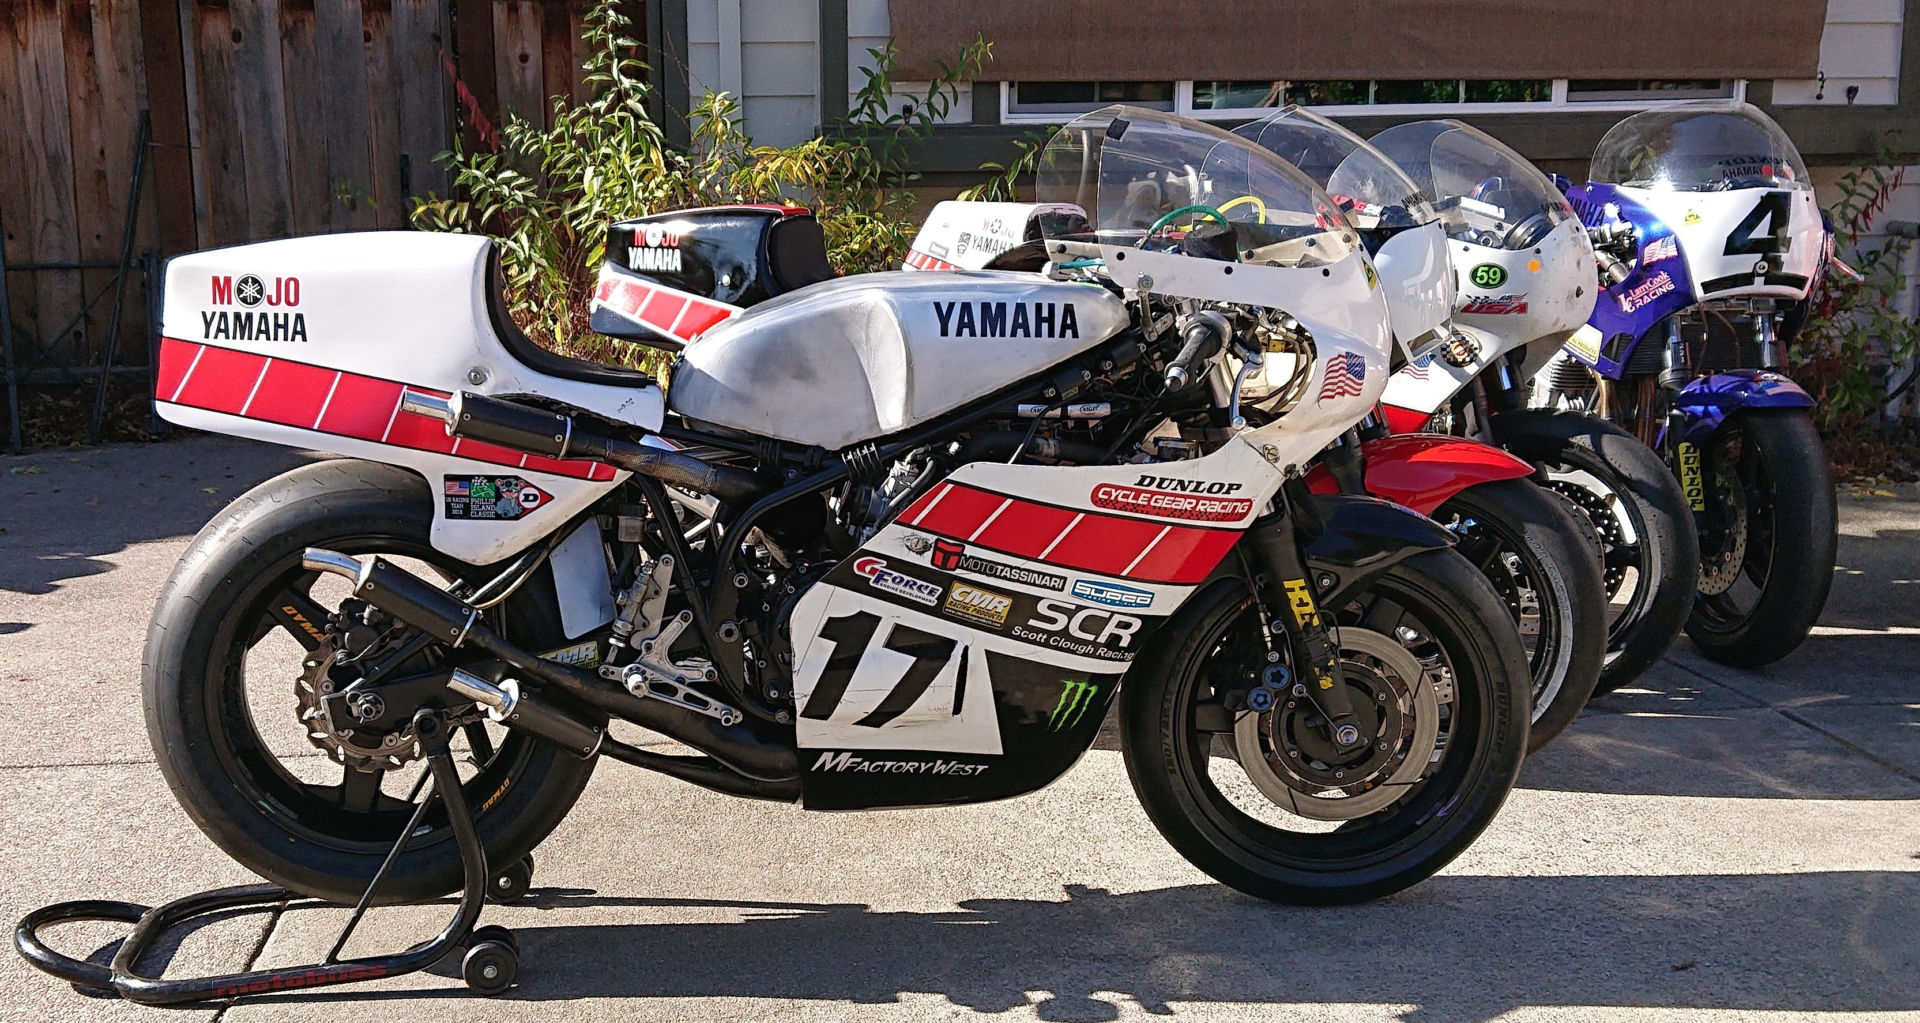 Some of Mojo Yamaha's TZ750 racebikes. Photo by Dave Crussell, courtesy AHRMA.